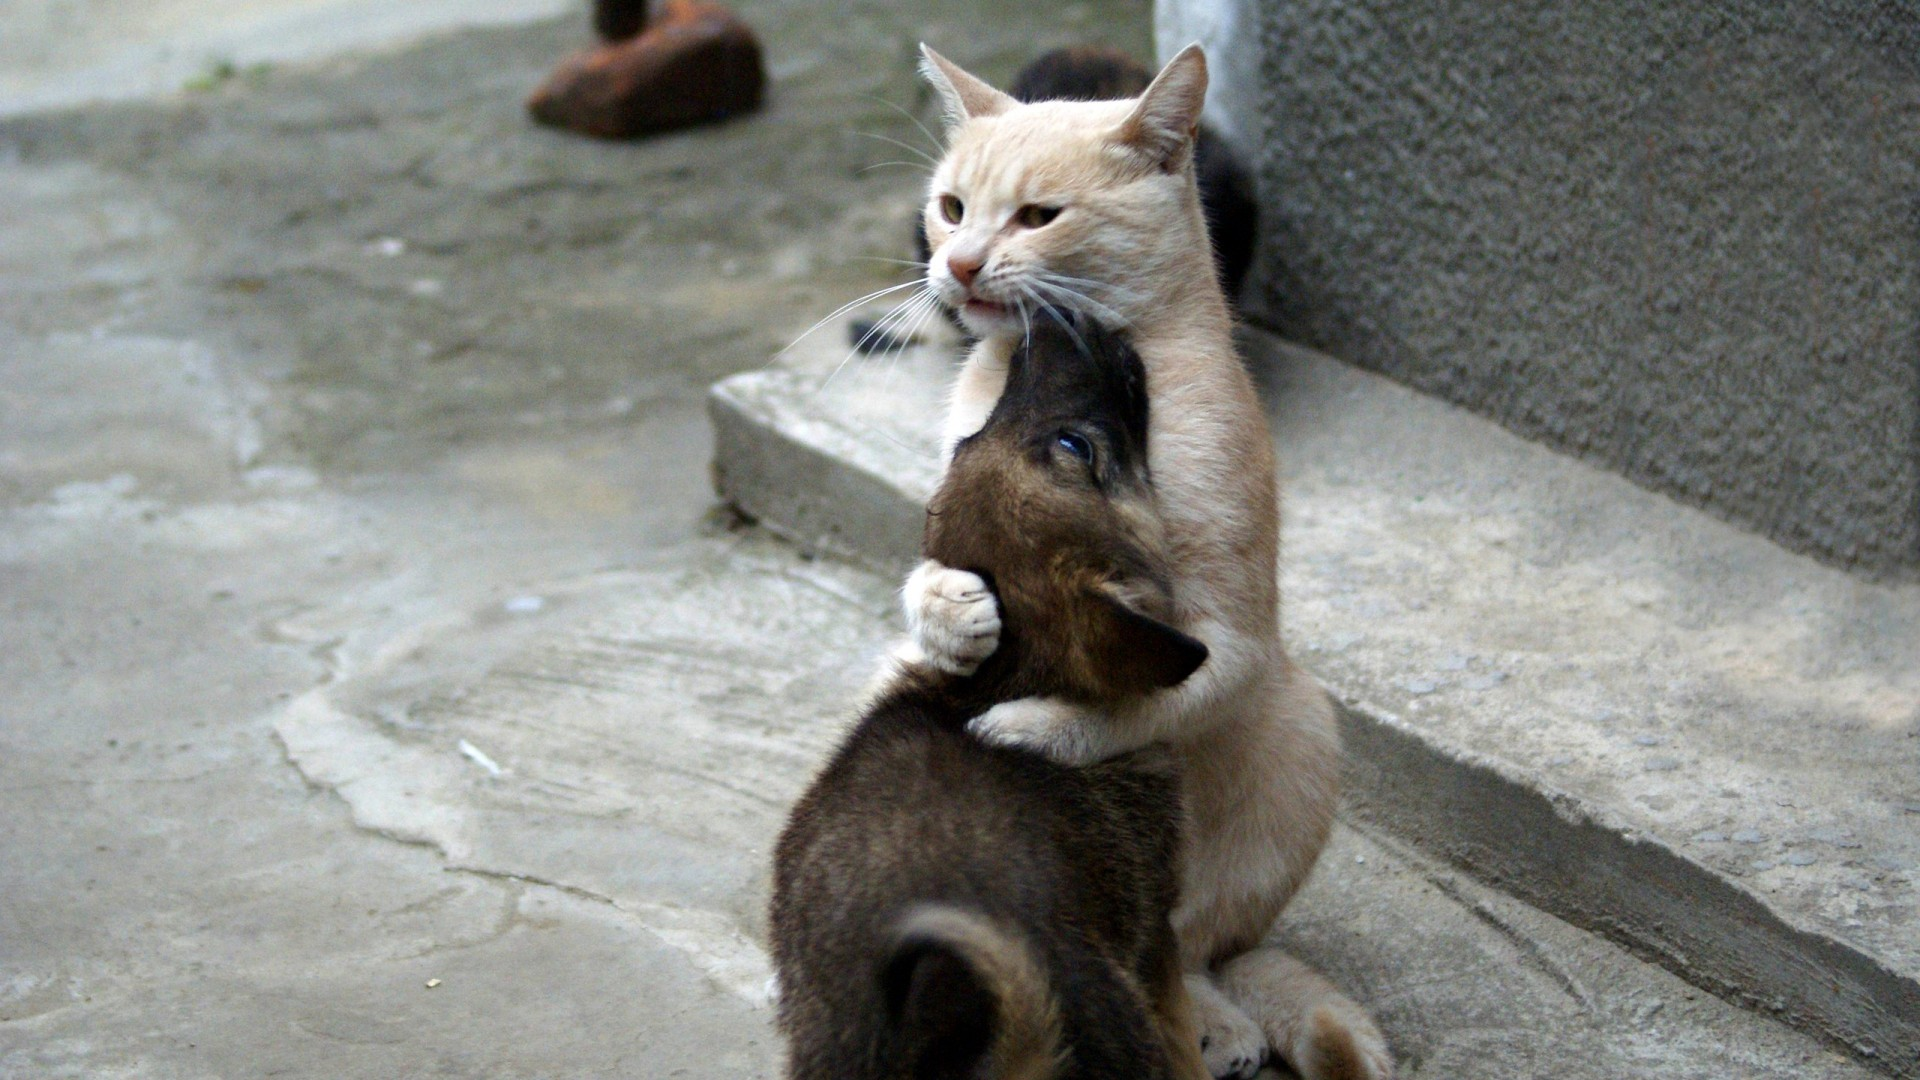 Dog Hugging Cat Meme